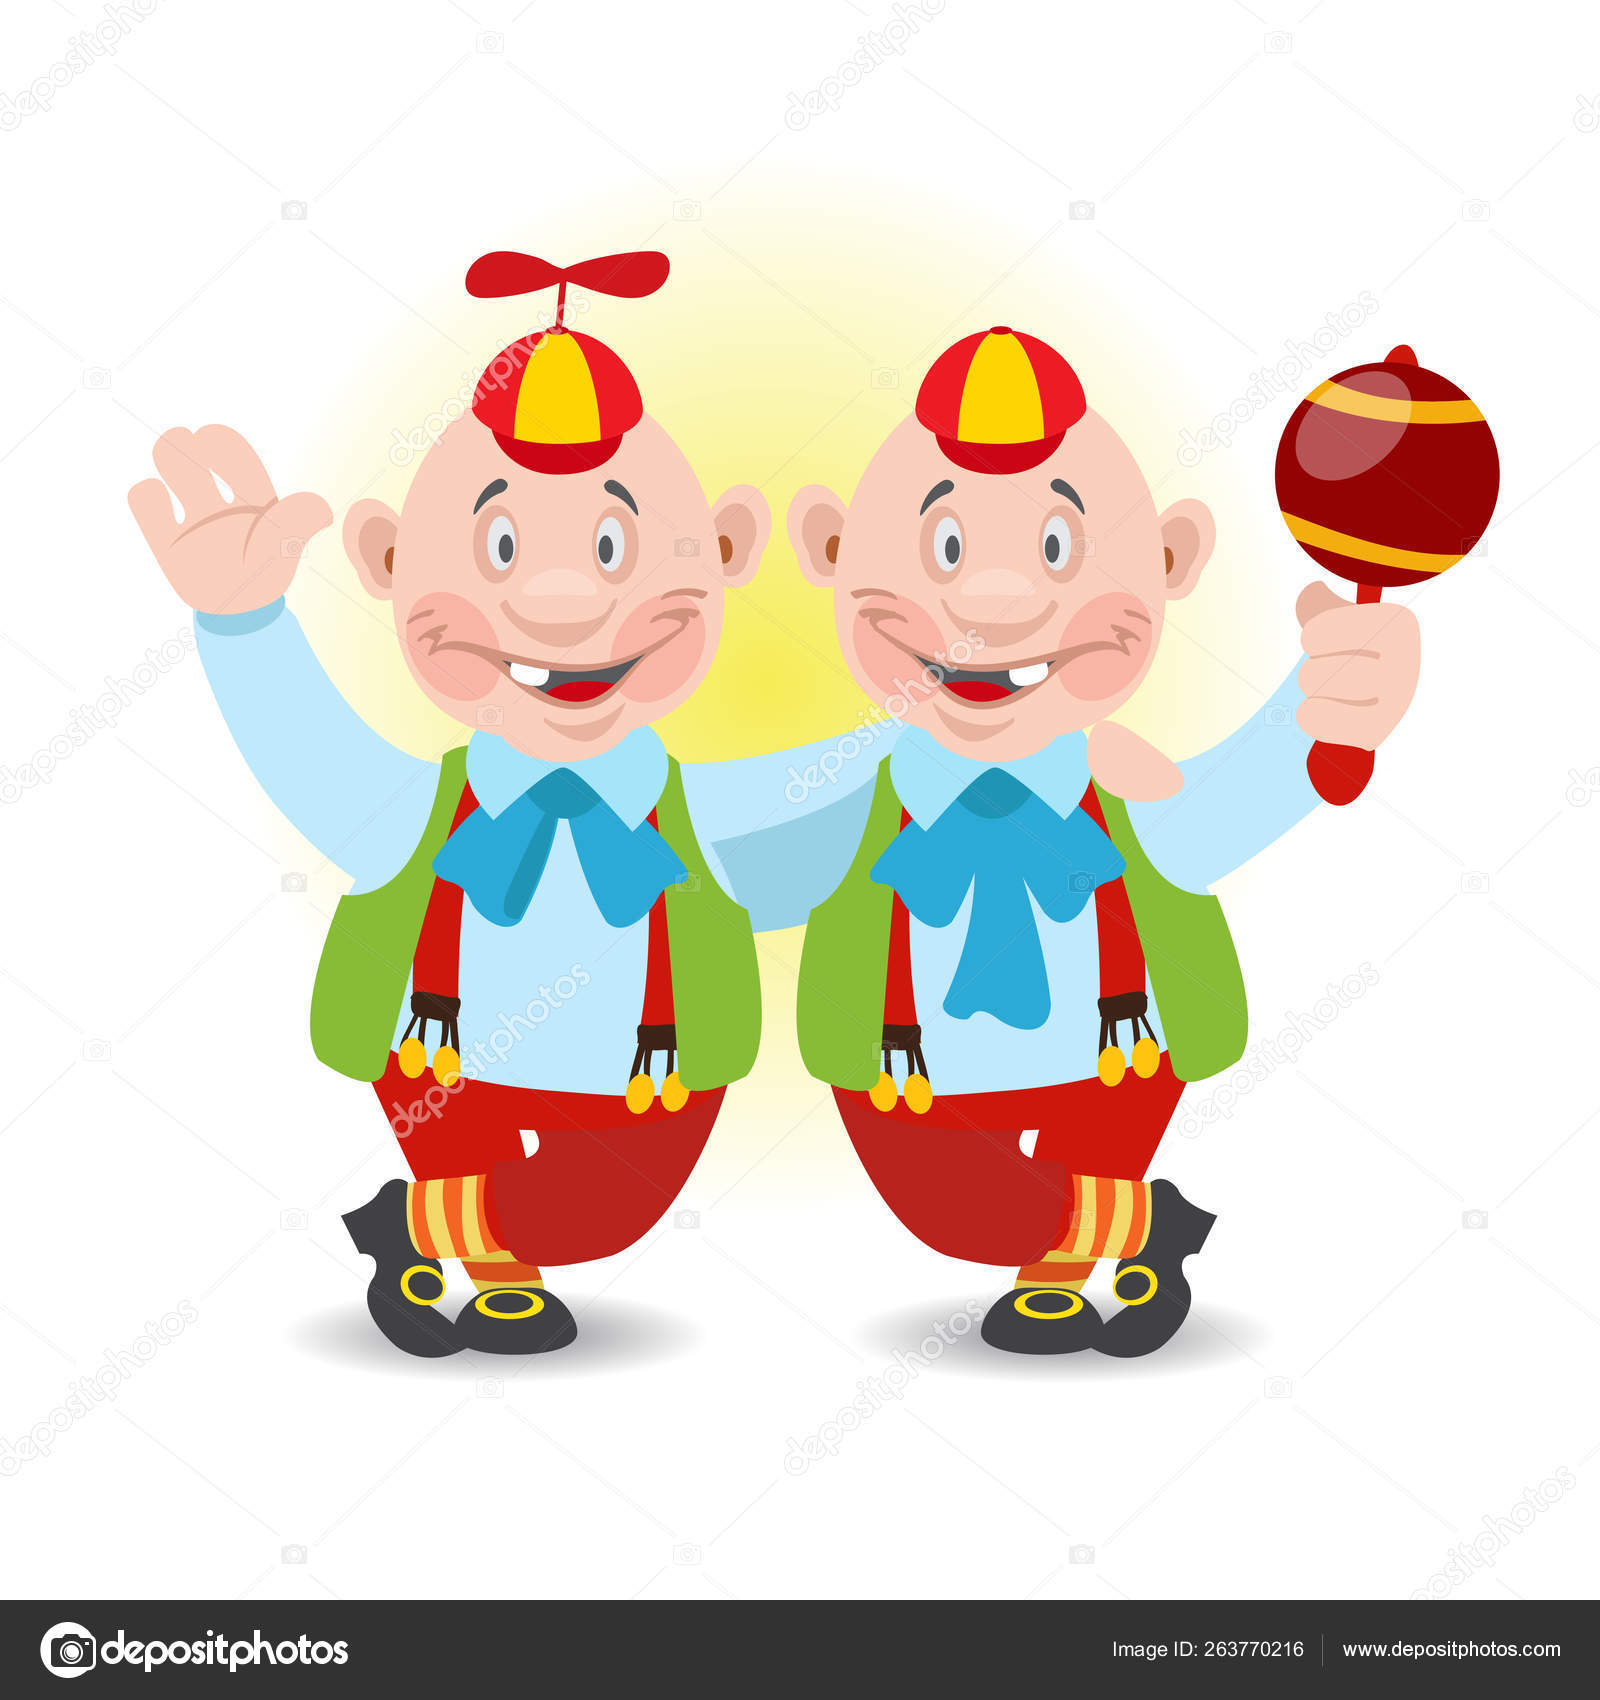 Tweedledum and Tweedledee characters from the collection of ...